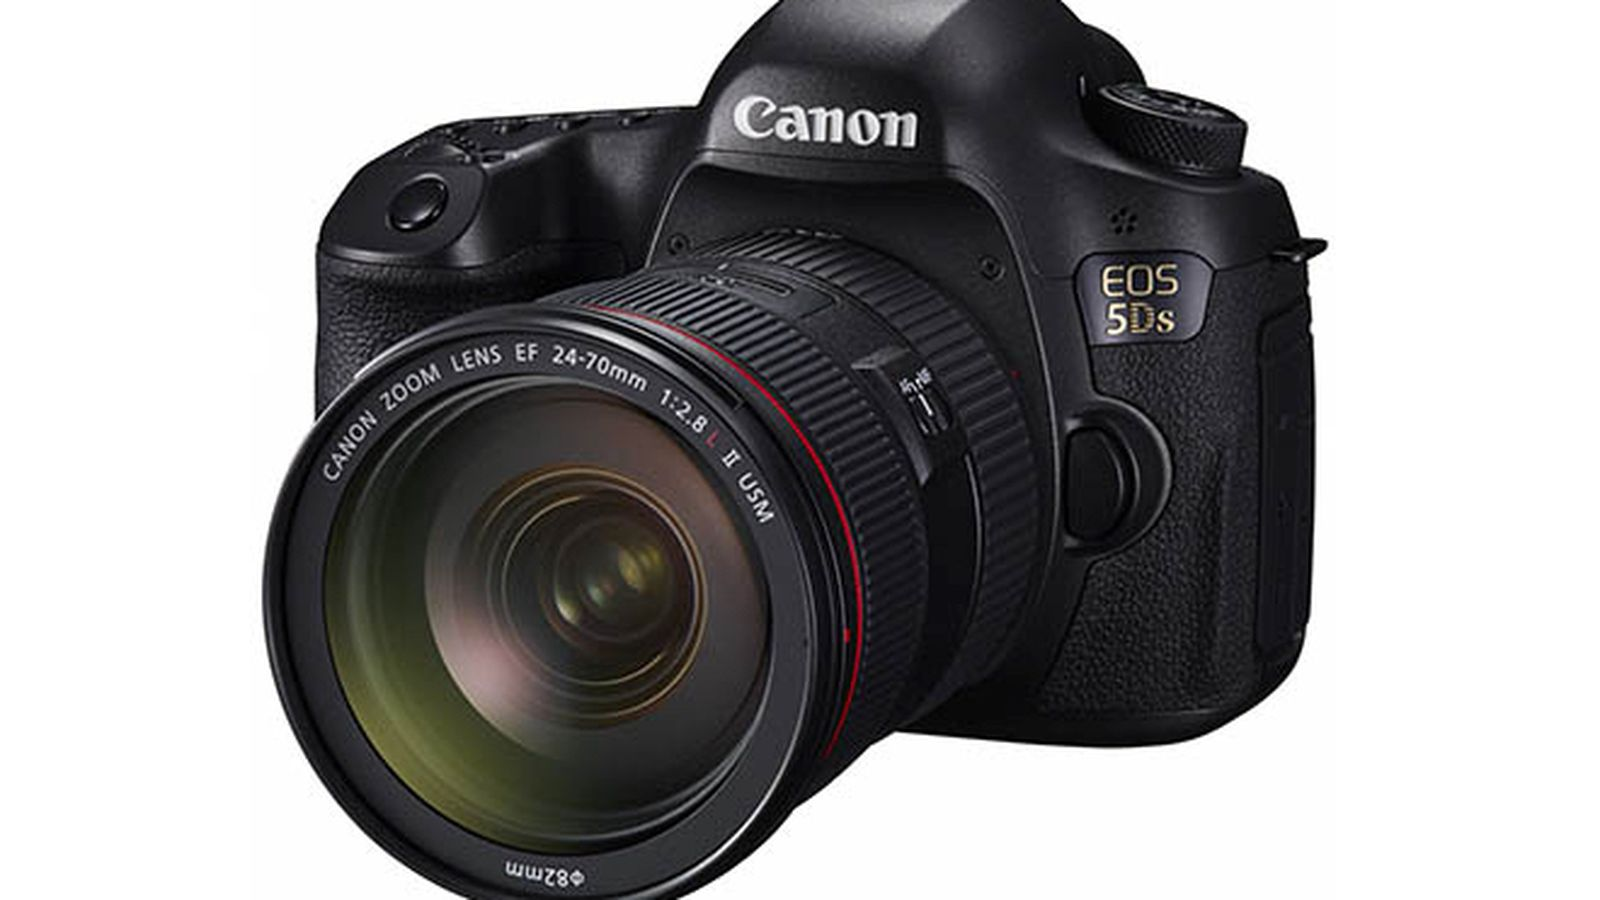 Camera Dslr Camera Megapixel canons 50 megapixel eos 5ds is the highest resolution full frame dslr ever verge